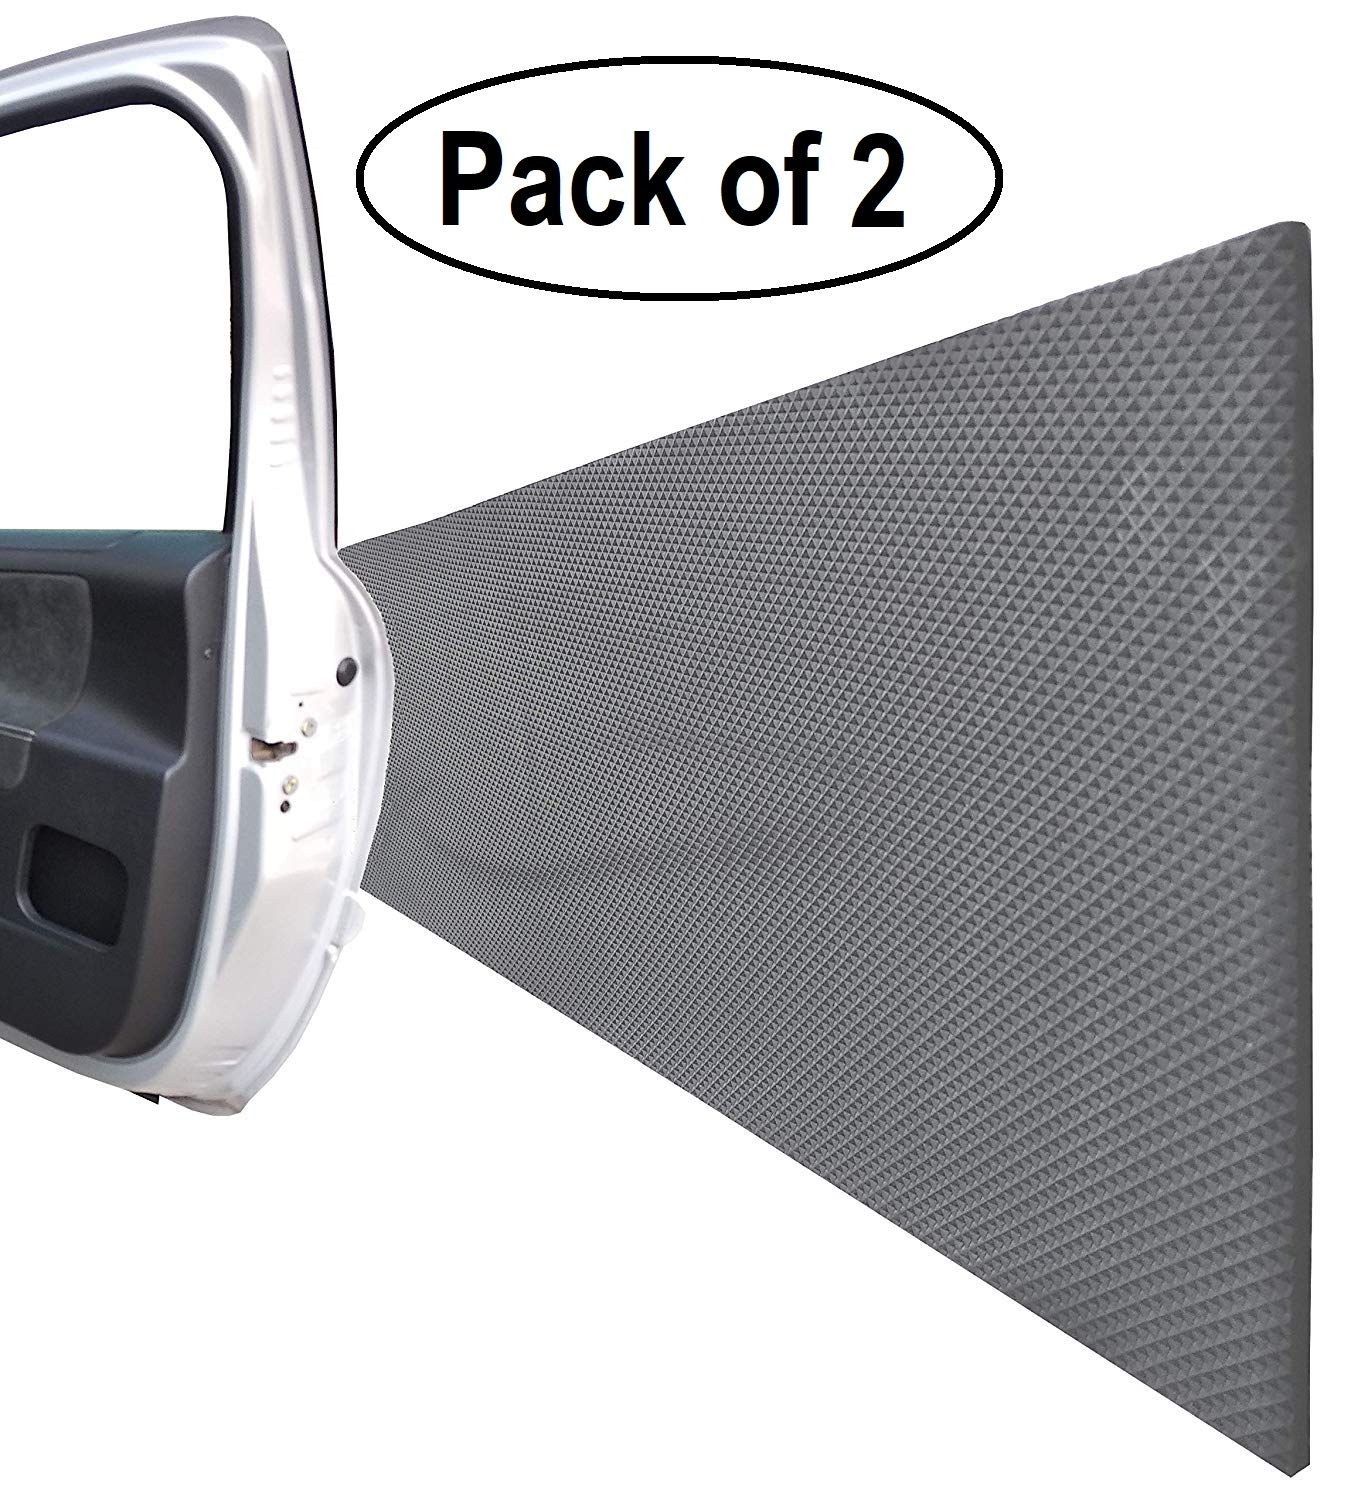 Garage Wall Protector for Car Doors, Self Adhesive and Thick Foam Guard Bumper, for Indoor or Outdoor use, Dimensions 79''x 8''x 0.2'', Black Color (Pack of 2)